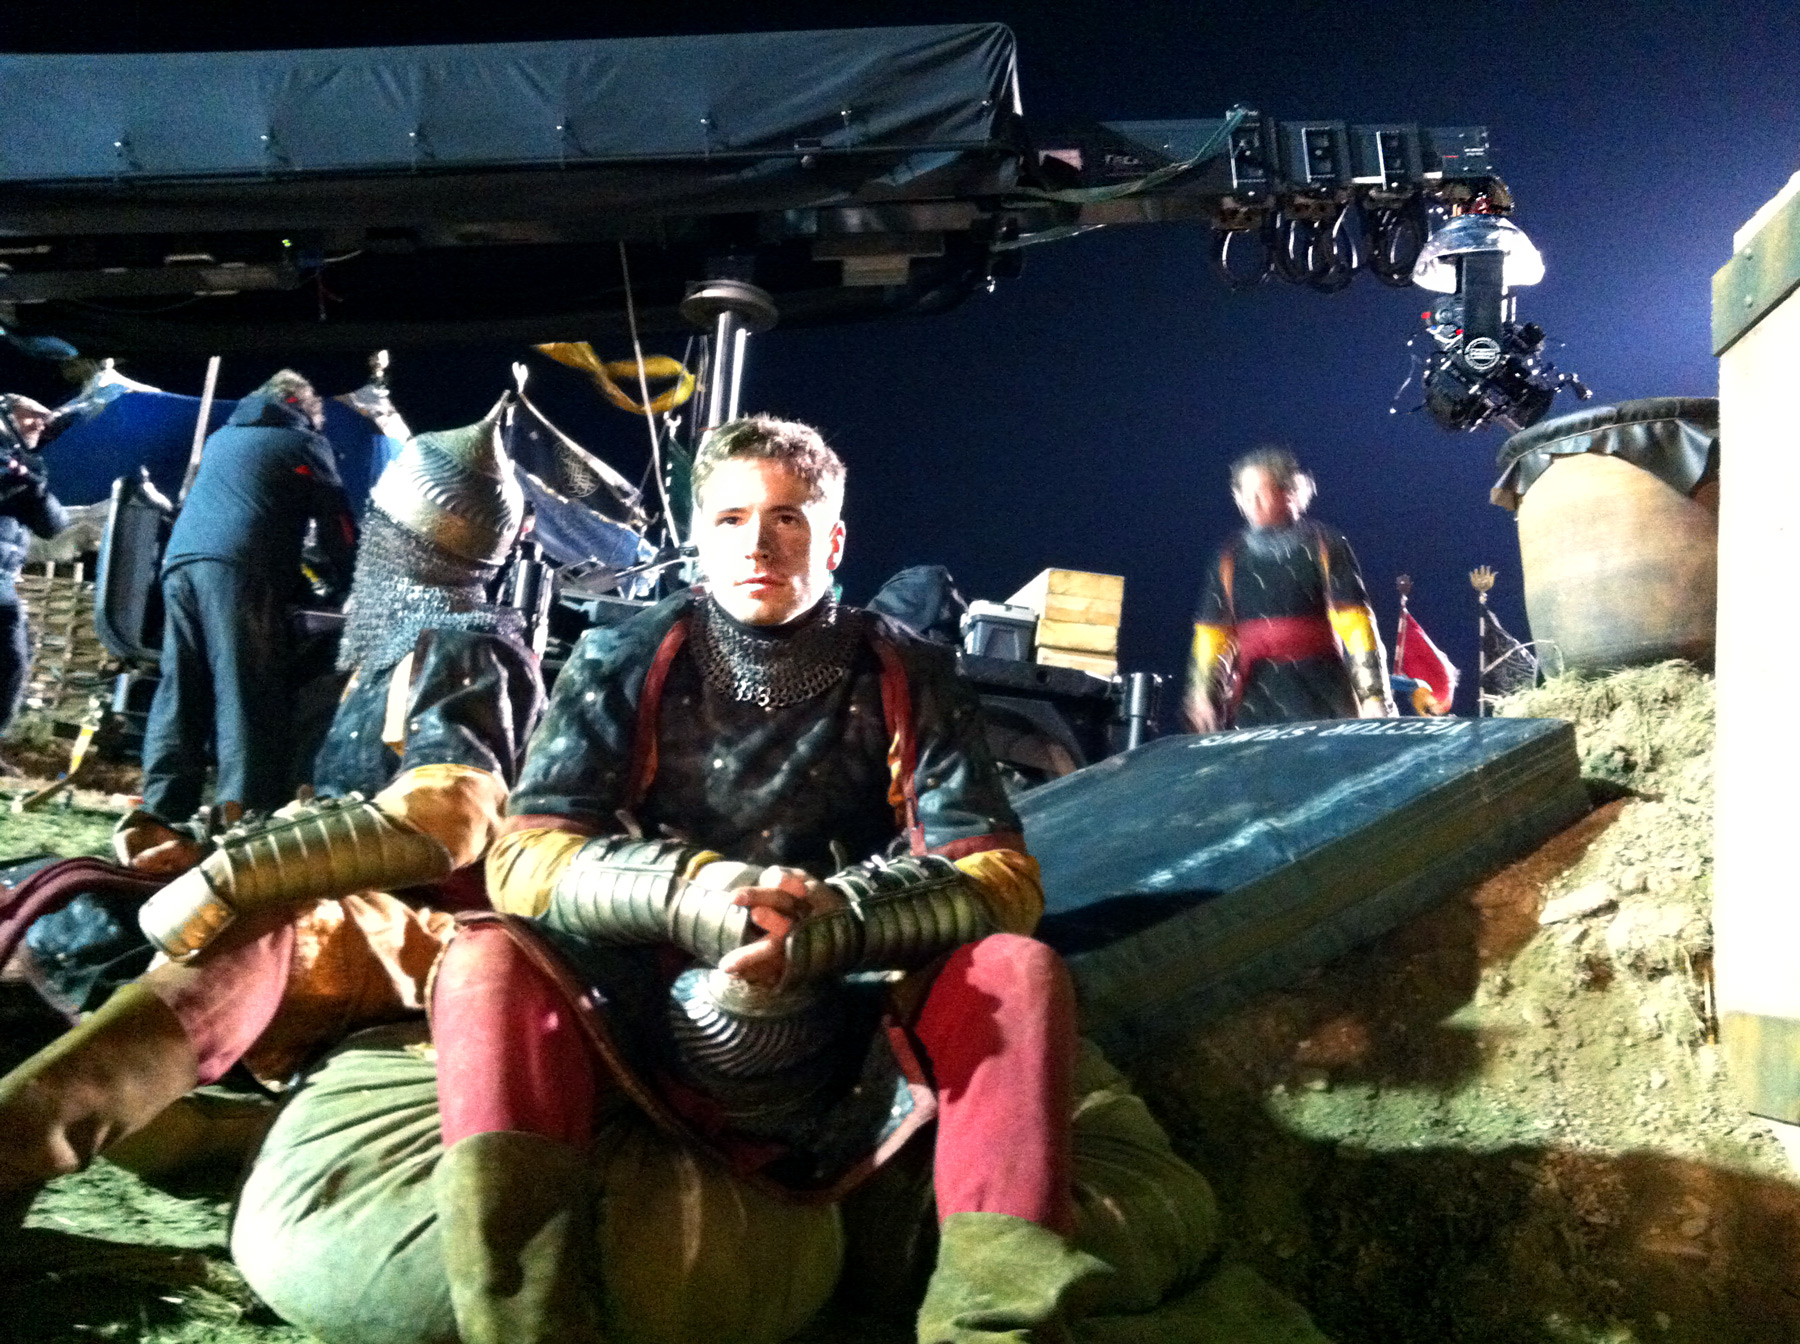 MG Action, Martin Goeres, Dracula Untold, to serve the story